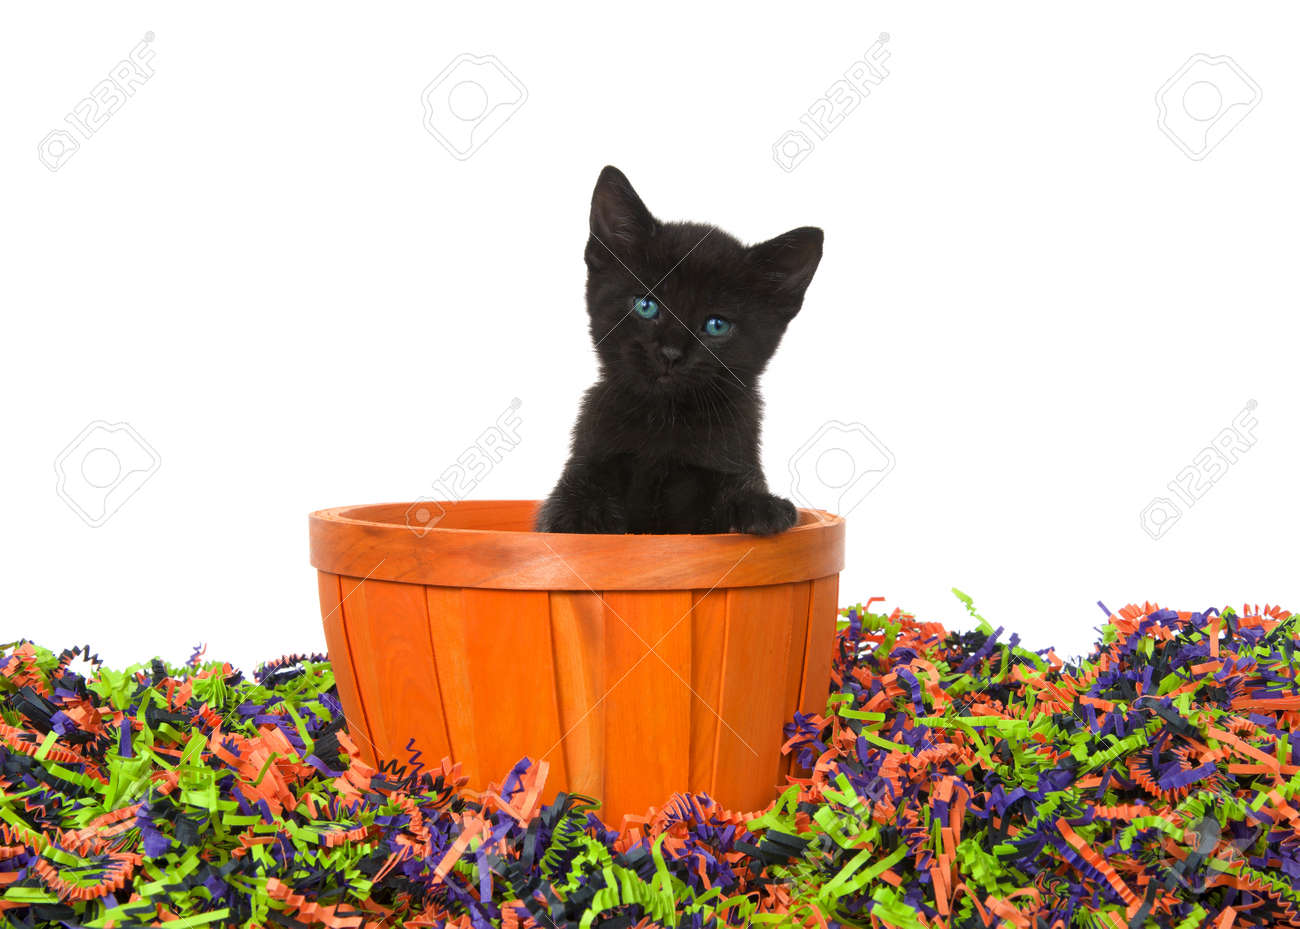 Adorable Black Kitten With Bright Blue Green Eyes Sitting In Stock Photo Picture And Royalty Free Image Image 124622966